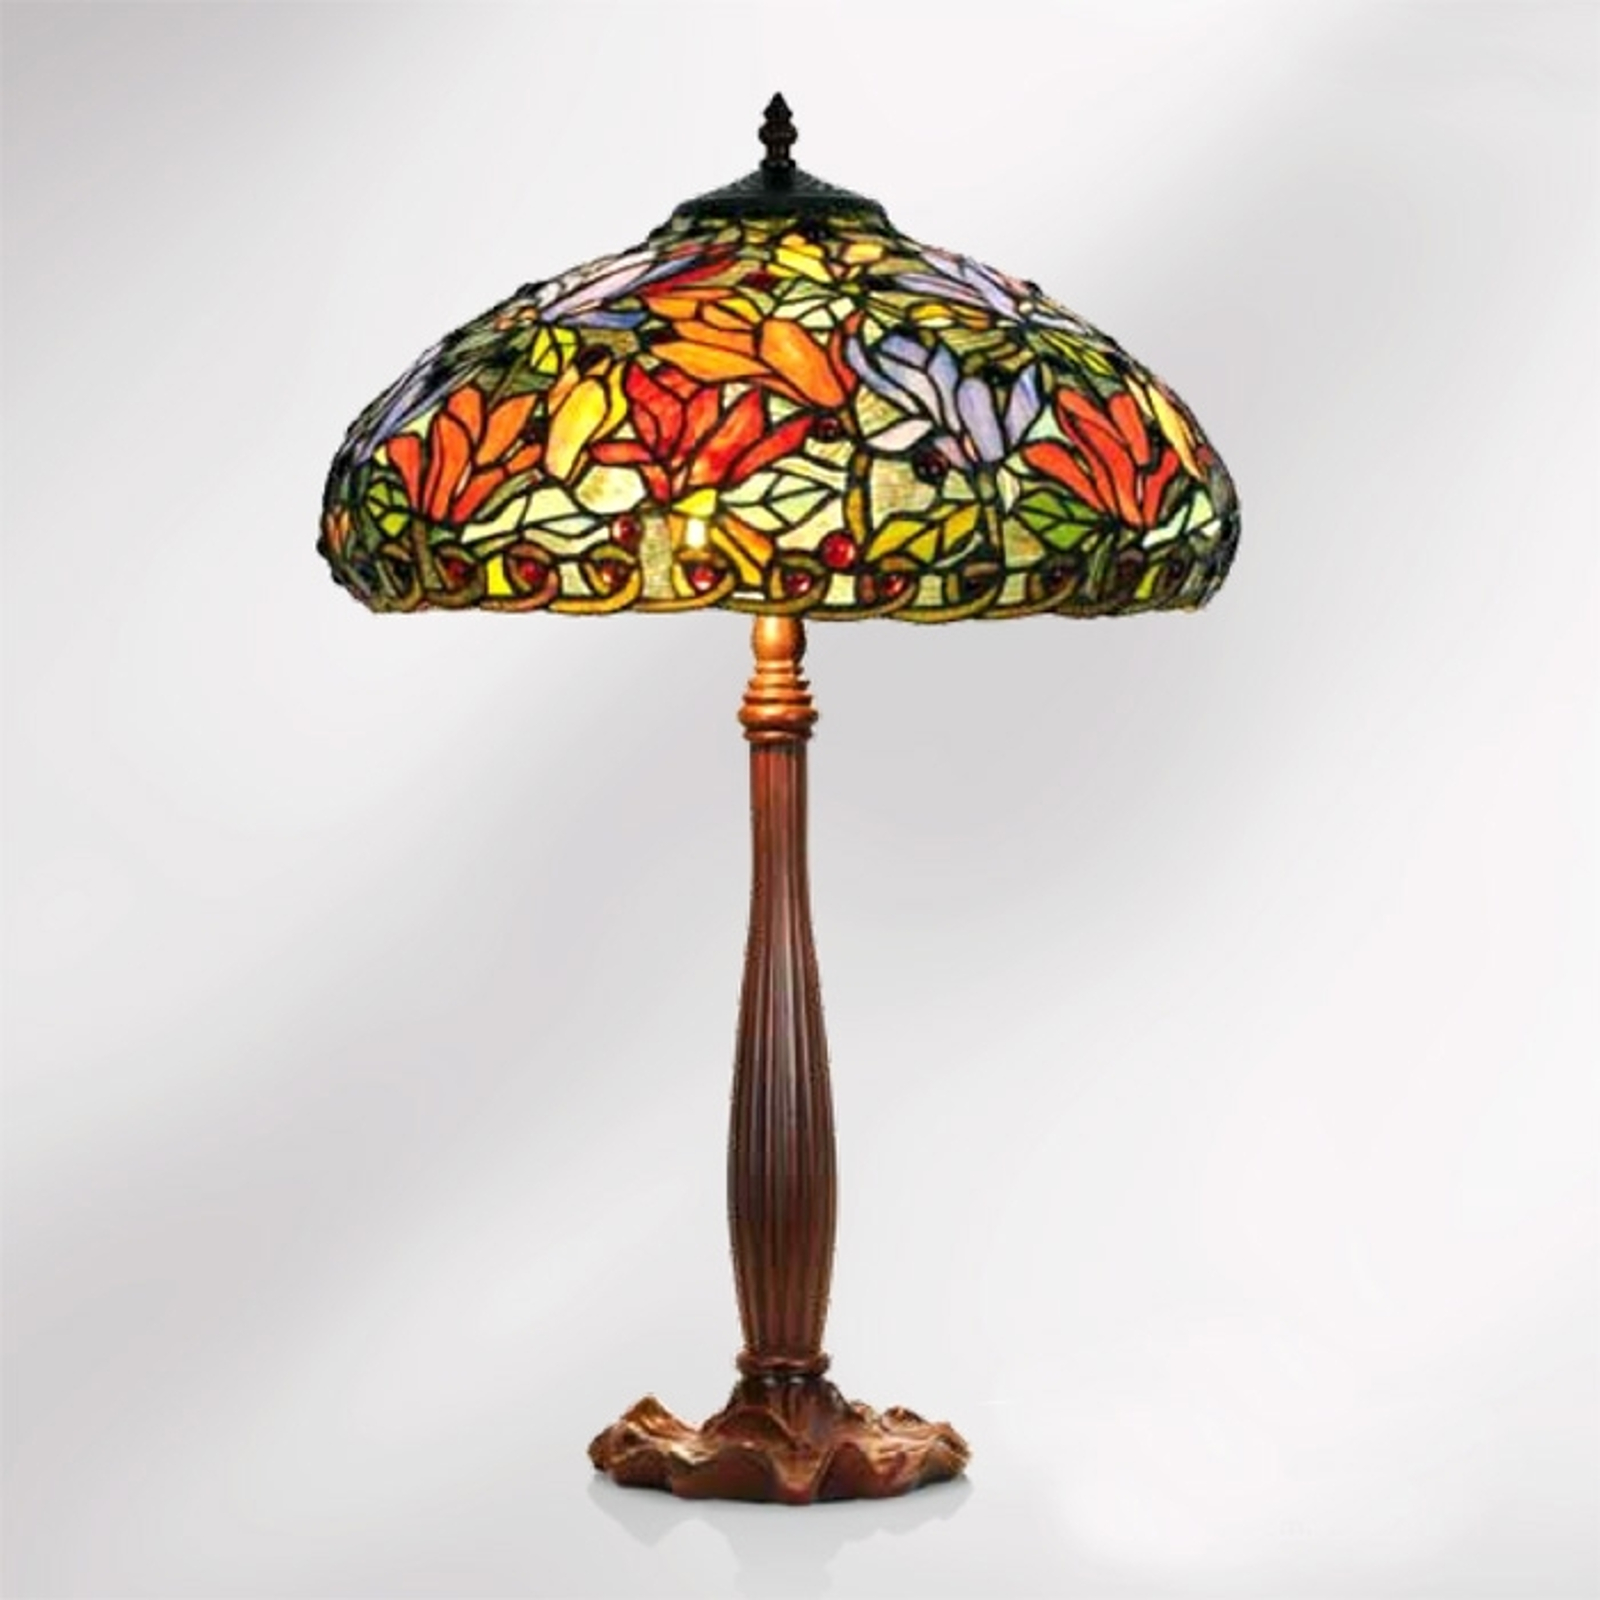 Table lamp Elaine in a floral Tiffany style, 64 cm_1032253_1